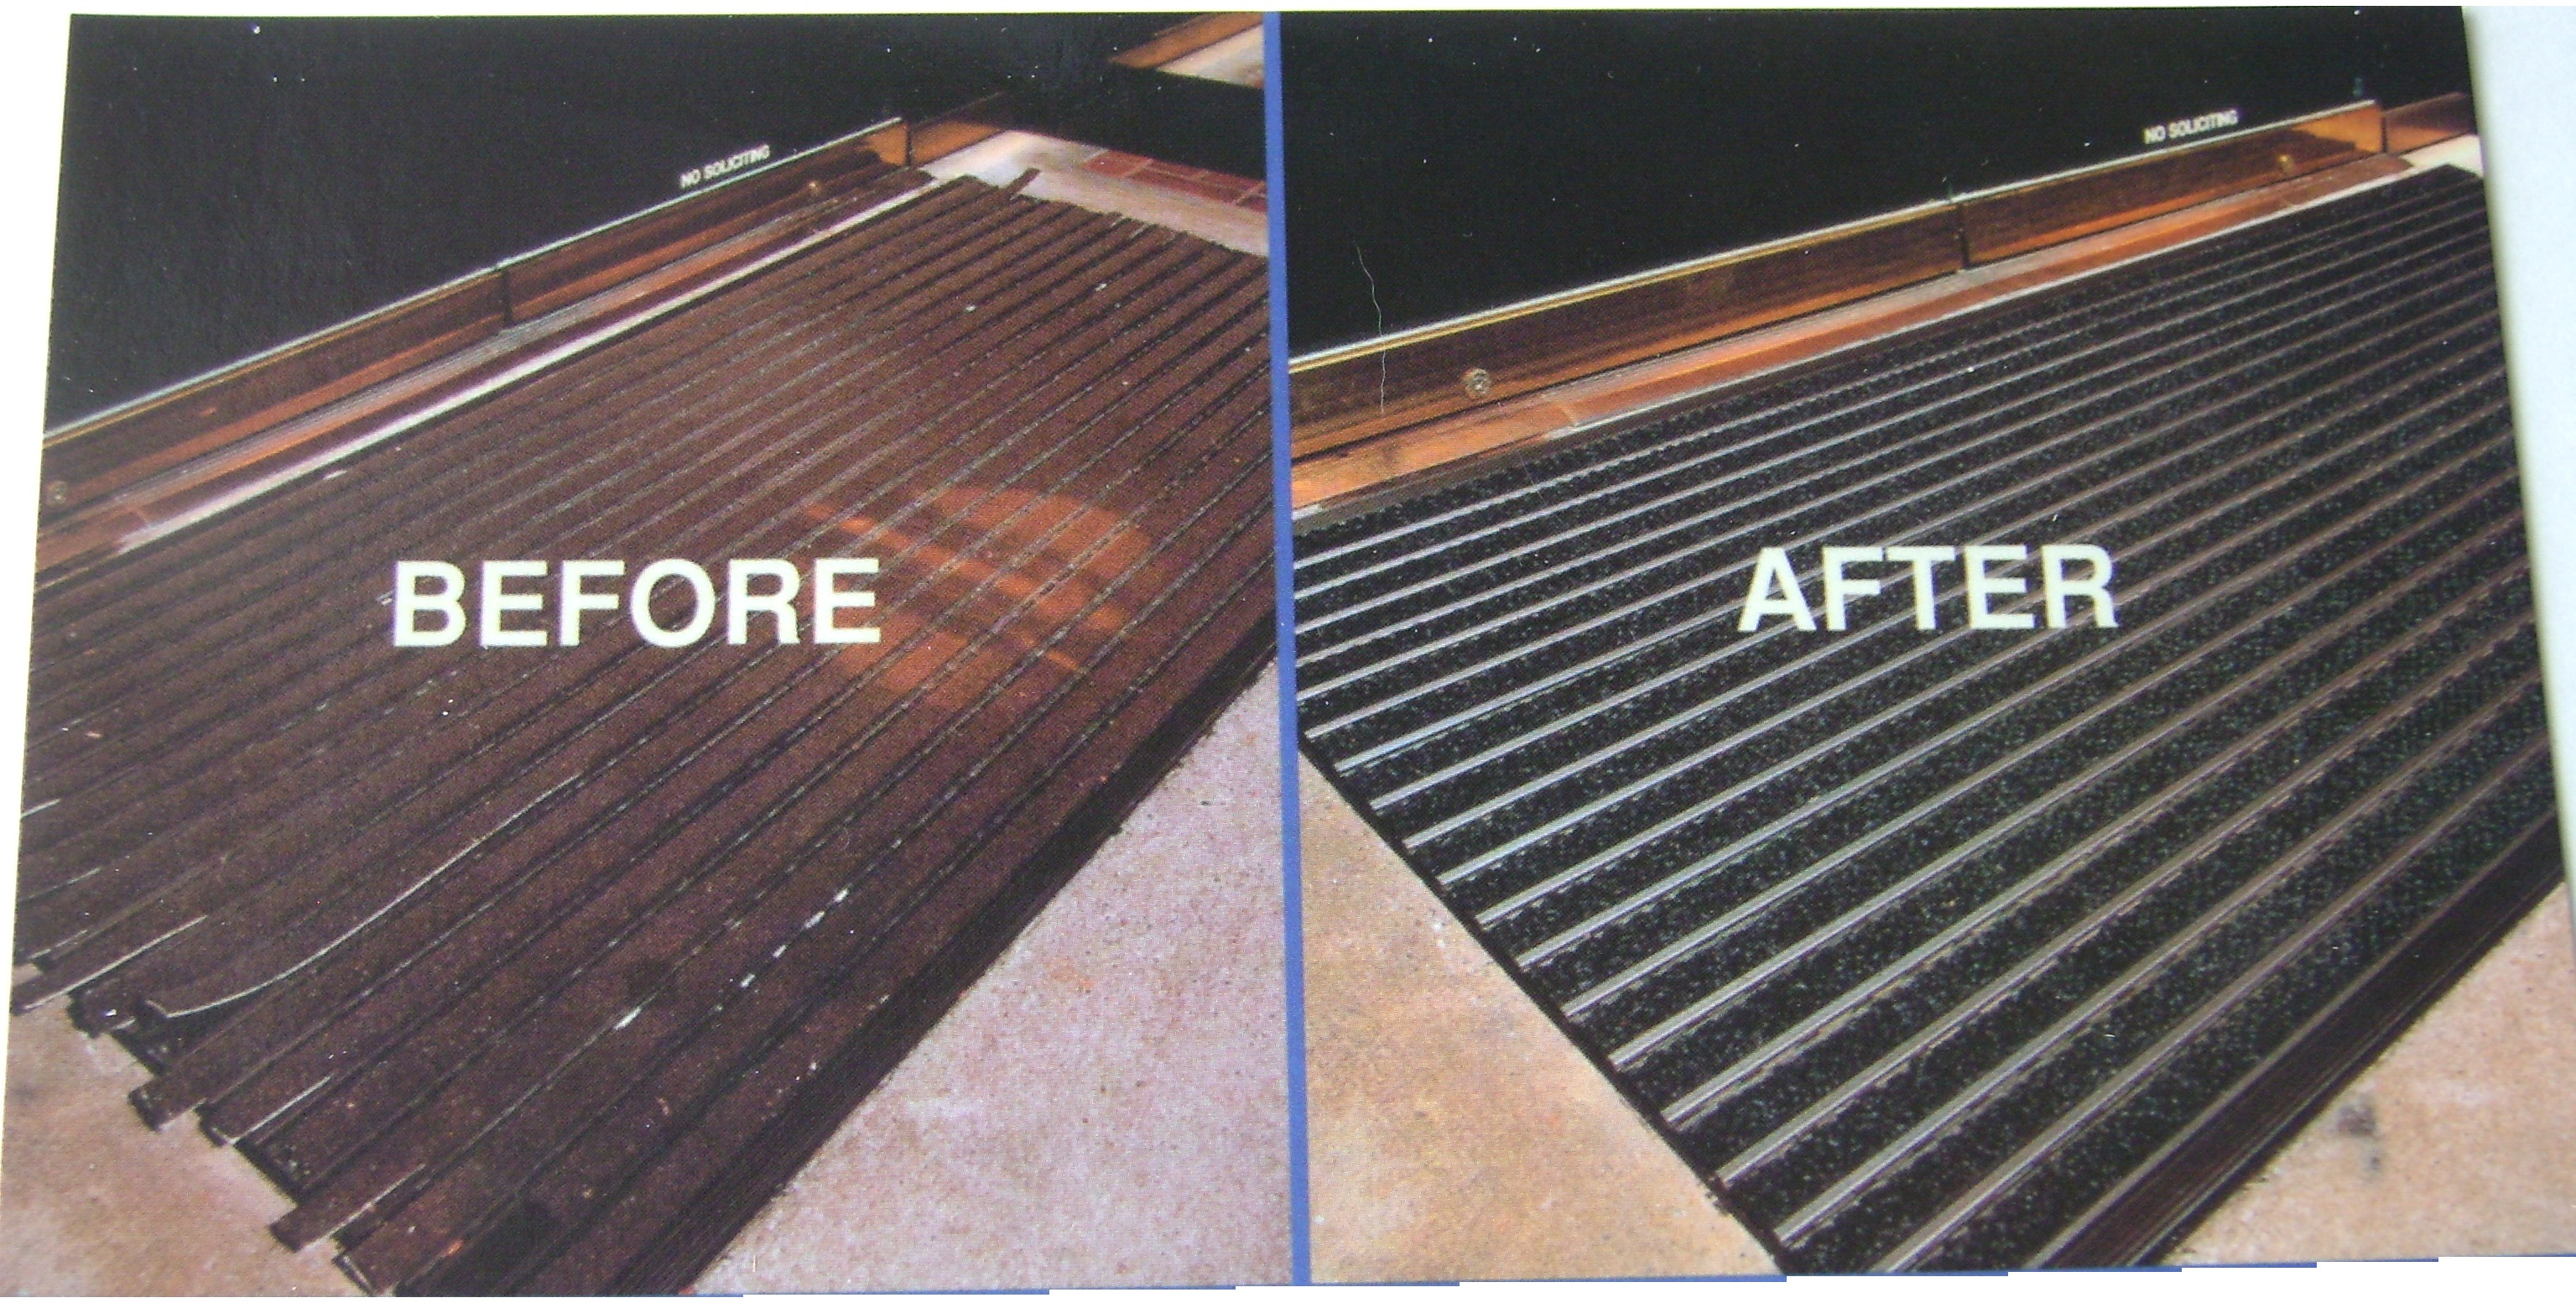 Grille Foot The Mad Matter Inc Announces Diamondstrip Repair System